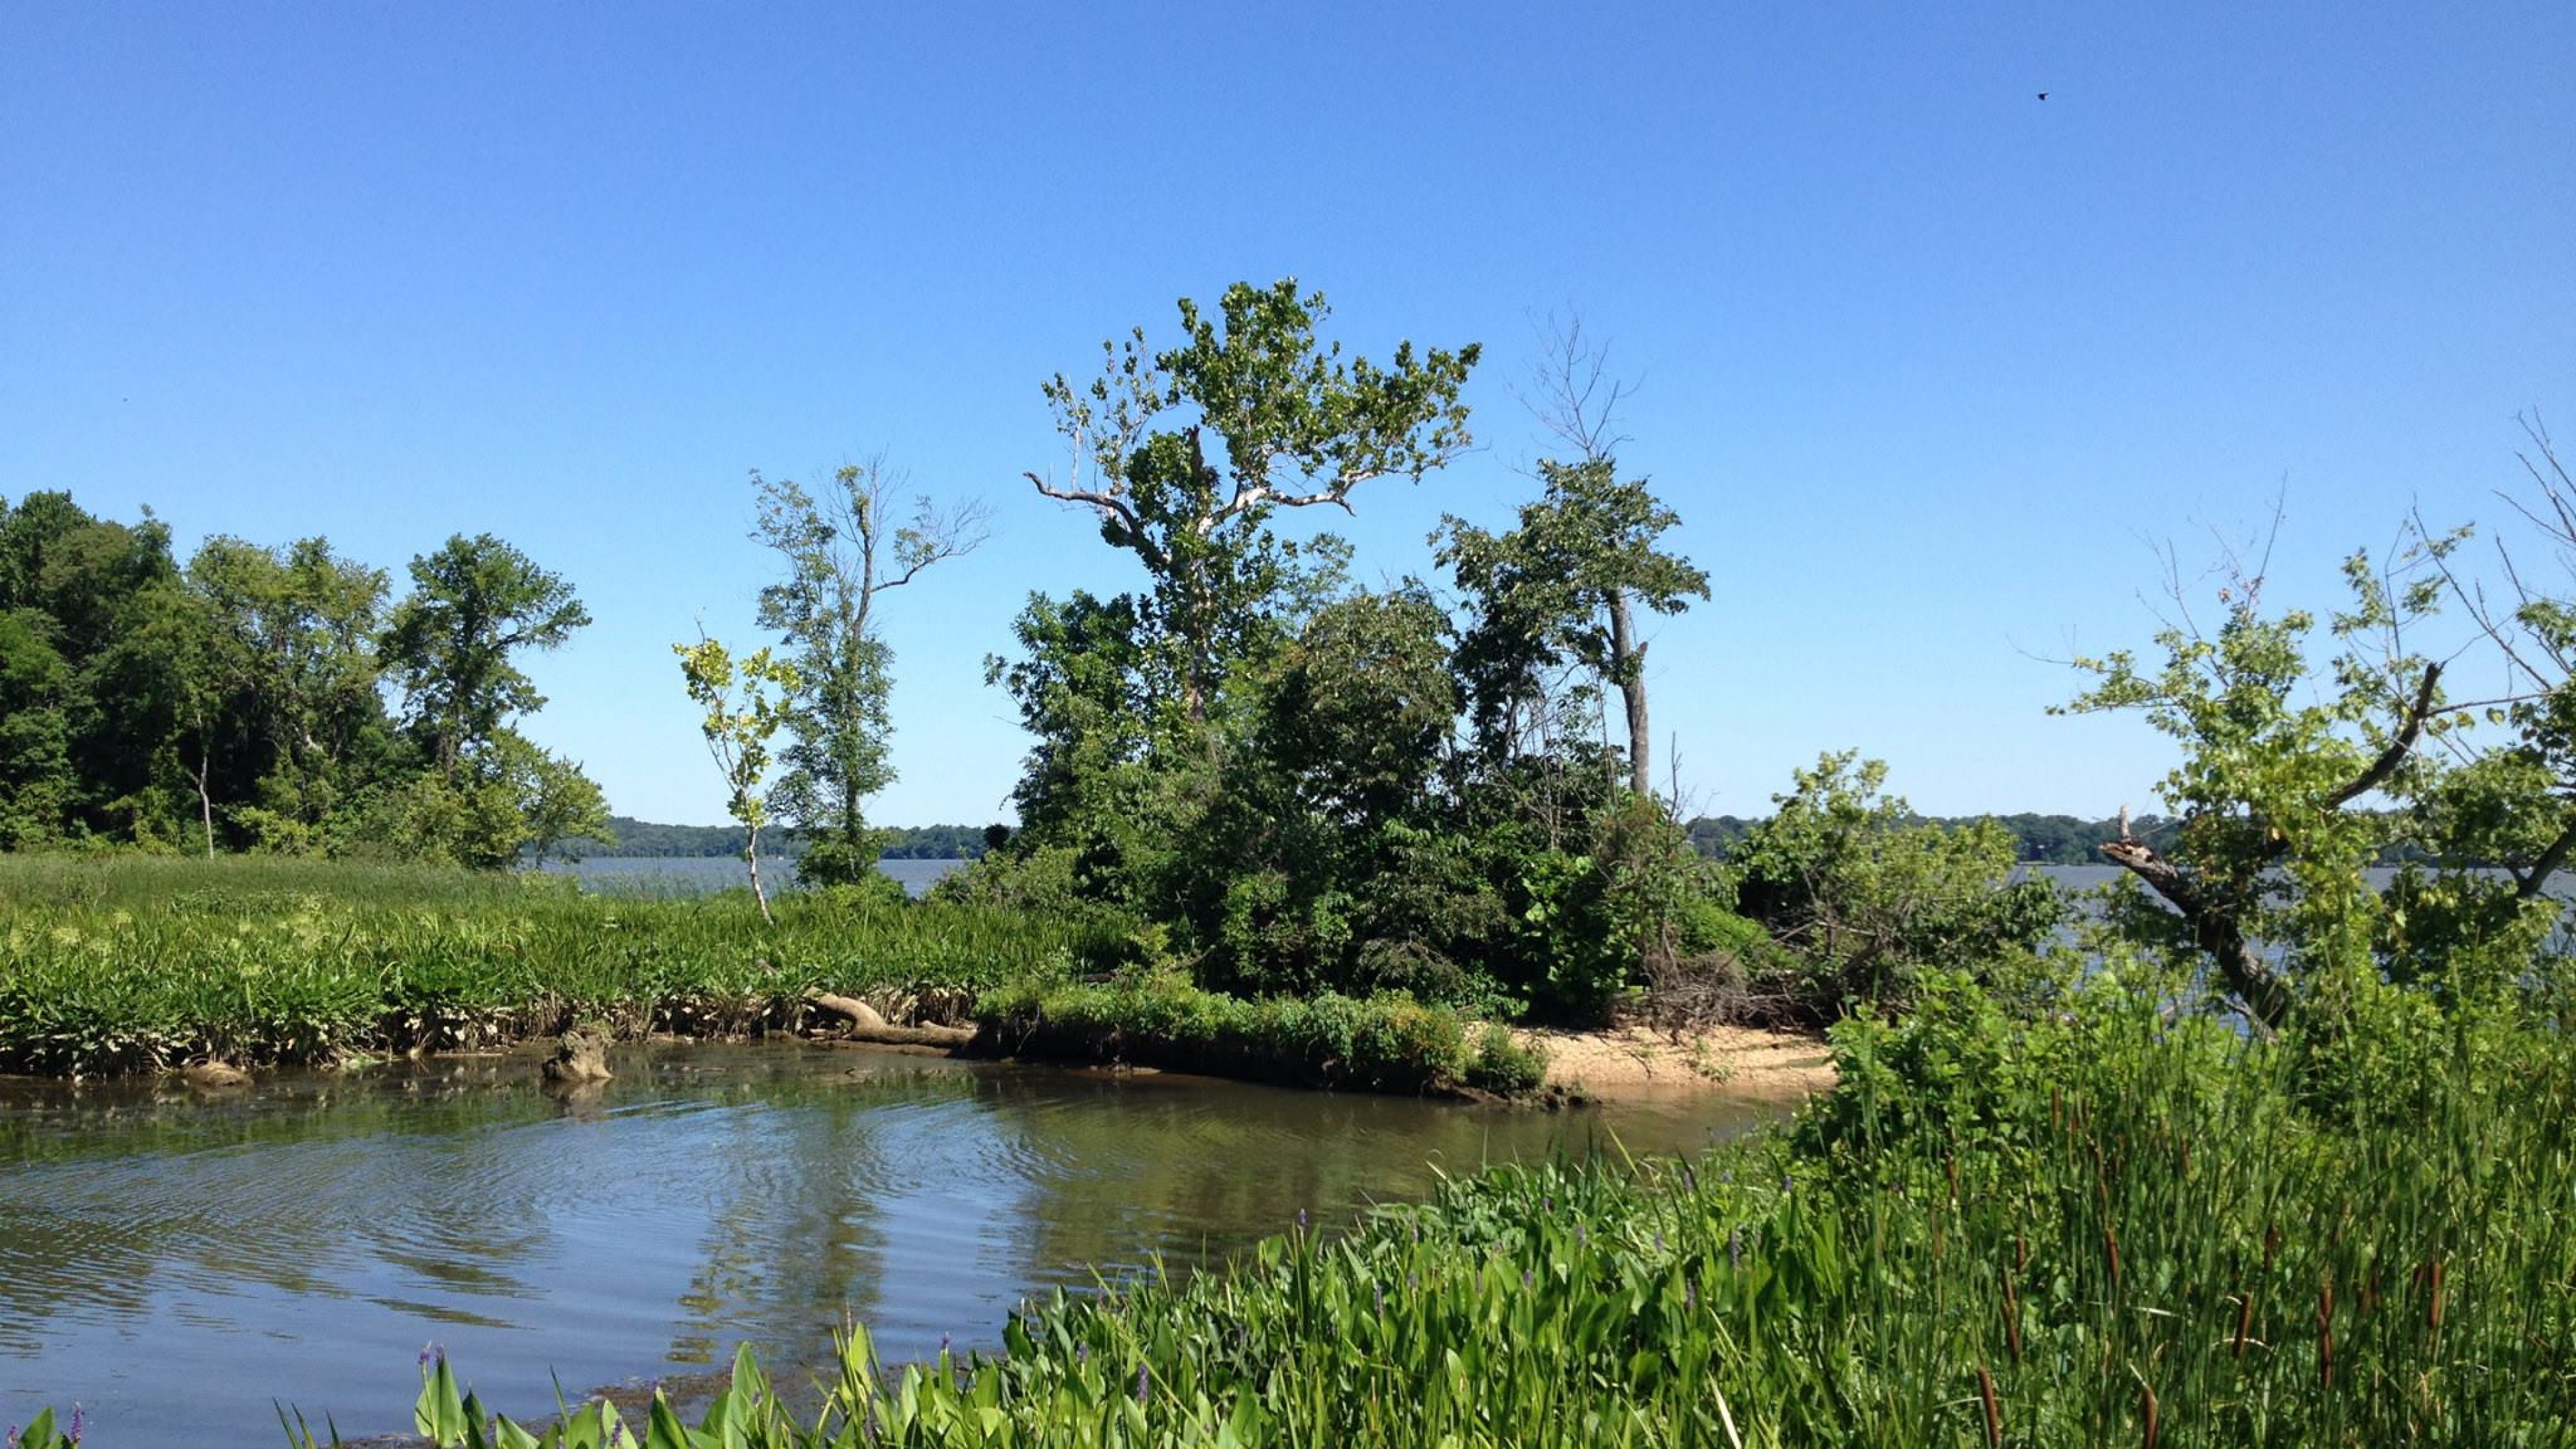 Greenery on the banks of the Accokeek Creek at Piscataway Park